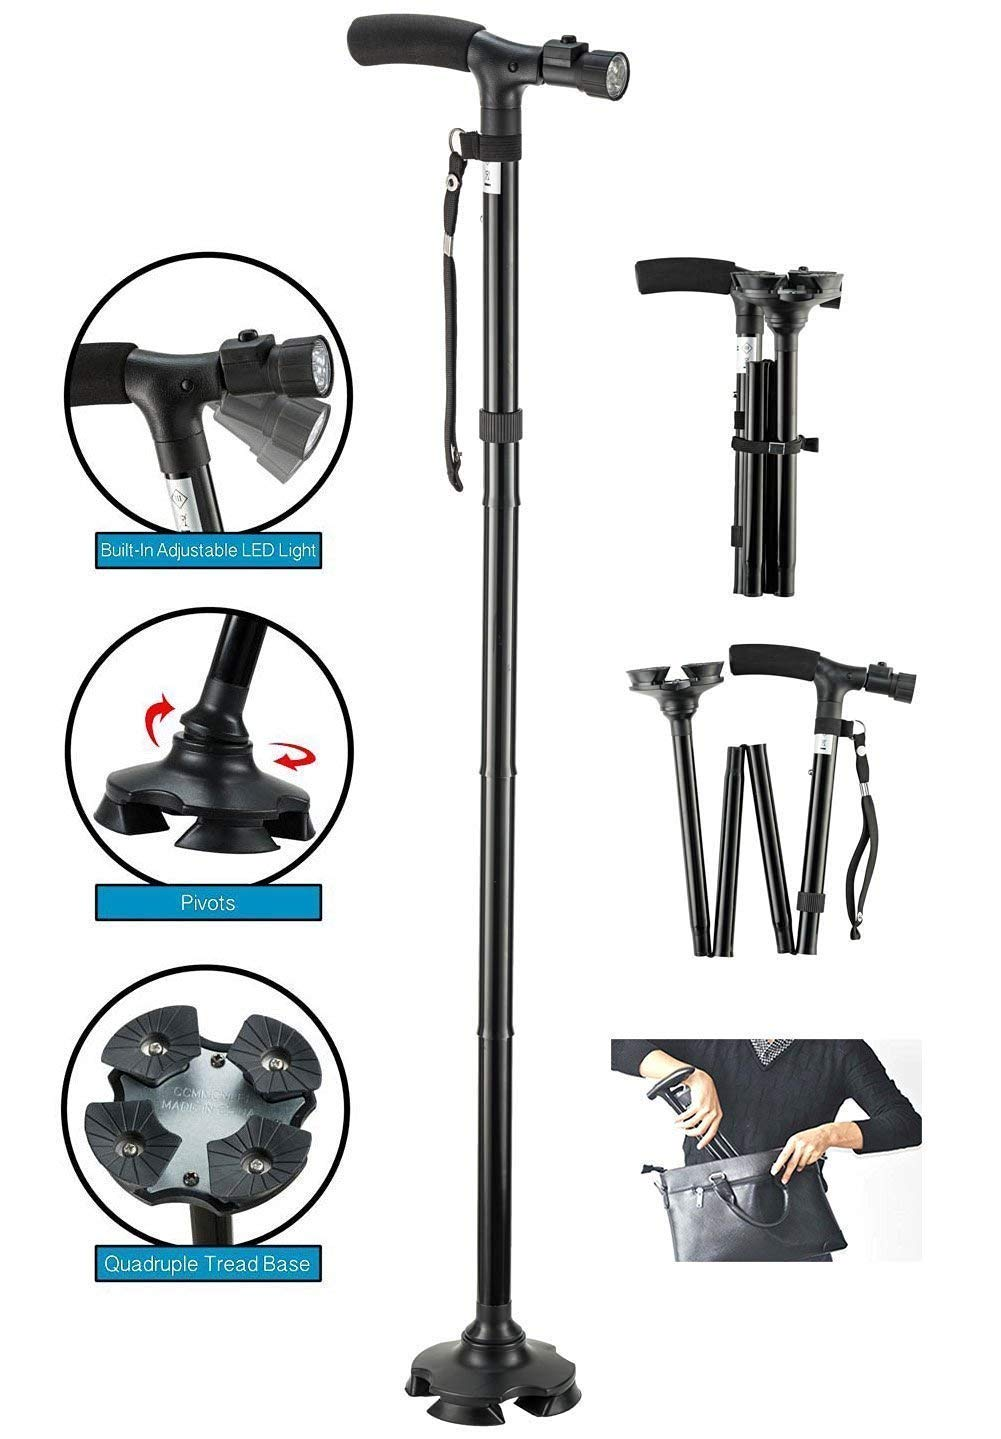 Folding Cane Walking Stick LED Flashlights Dependable Adjustable Height Lightweight Non Slip for Women Men by AIWAYING